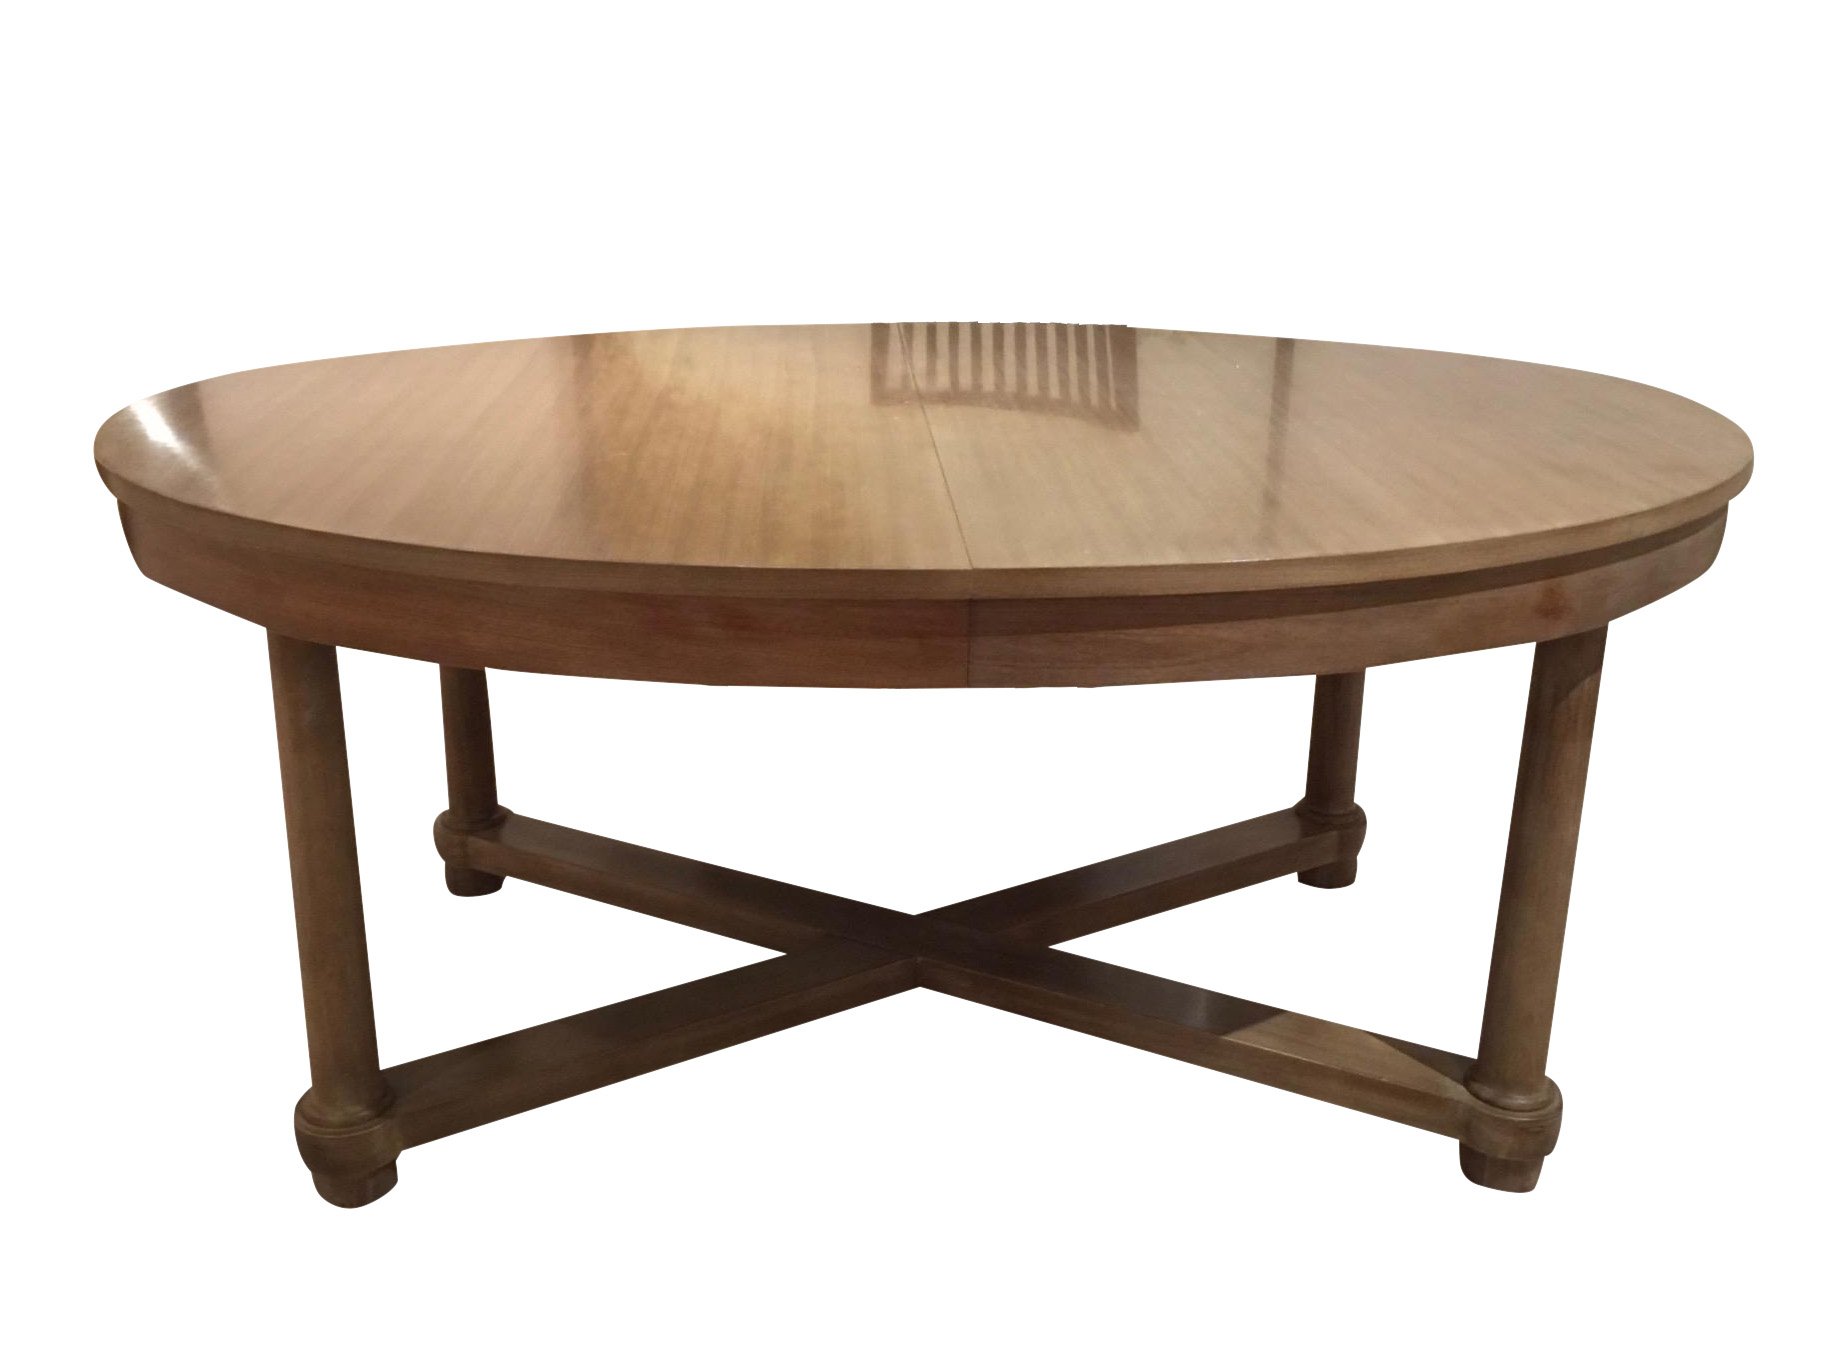 Barbara Barry for Baker Oval Dining Table Chairish